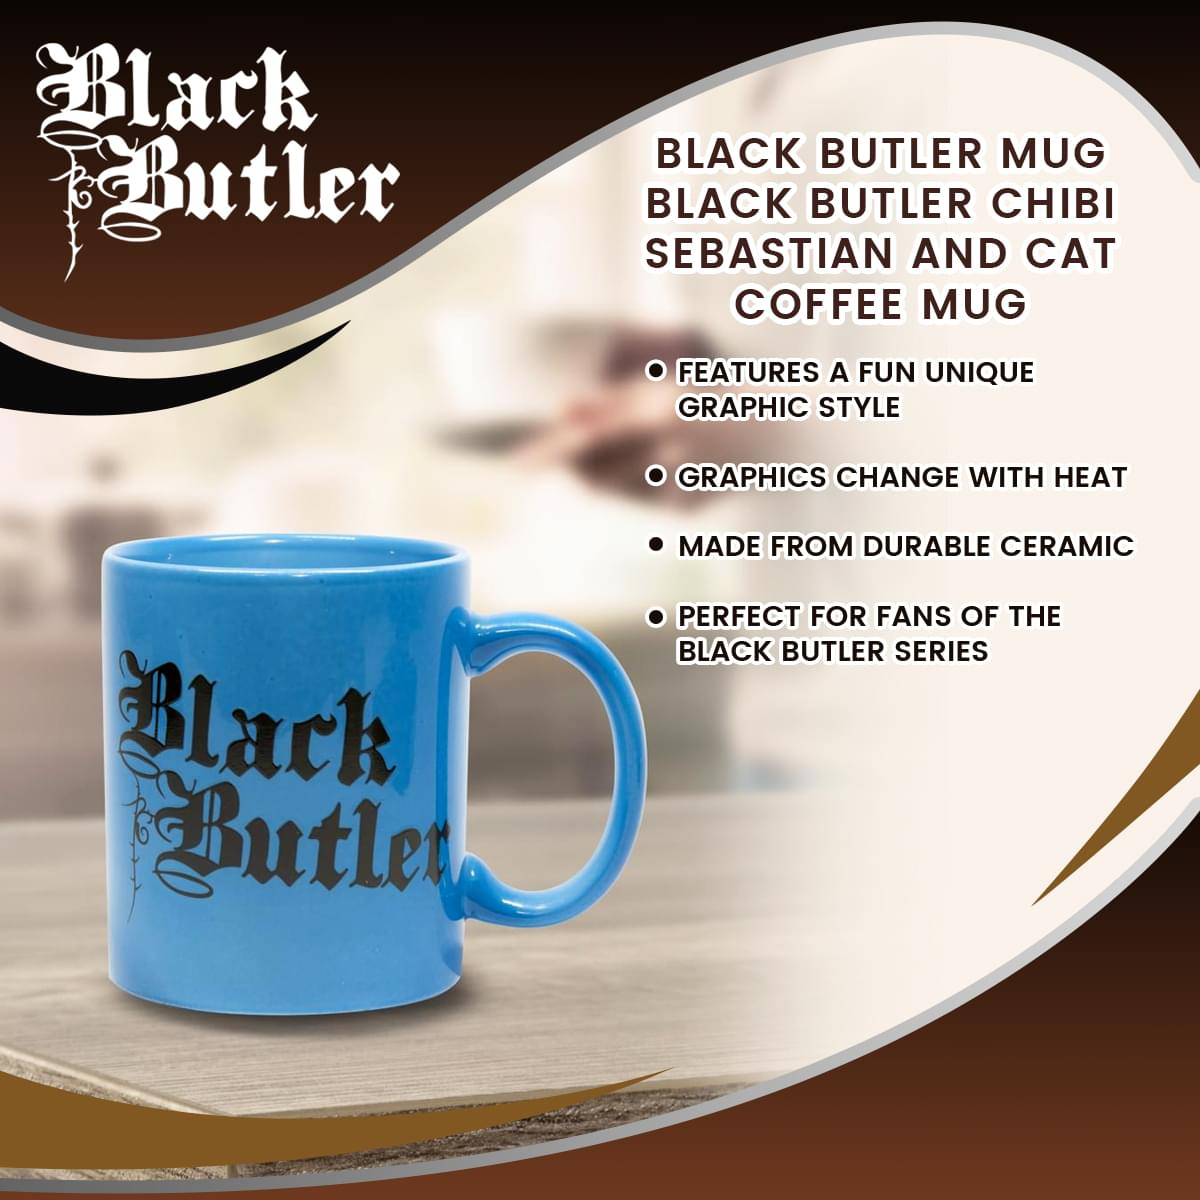 Black Butler Mug | Black Butler Chibi Sebastian and Cat Coffee Mug